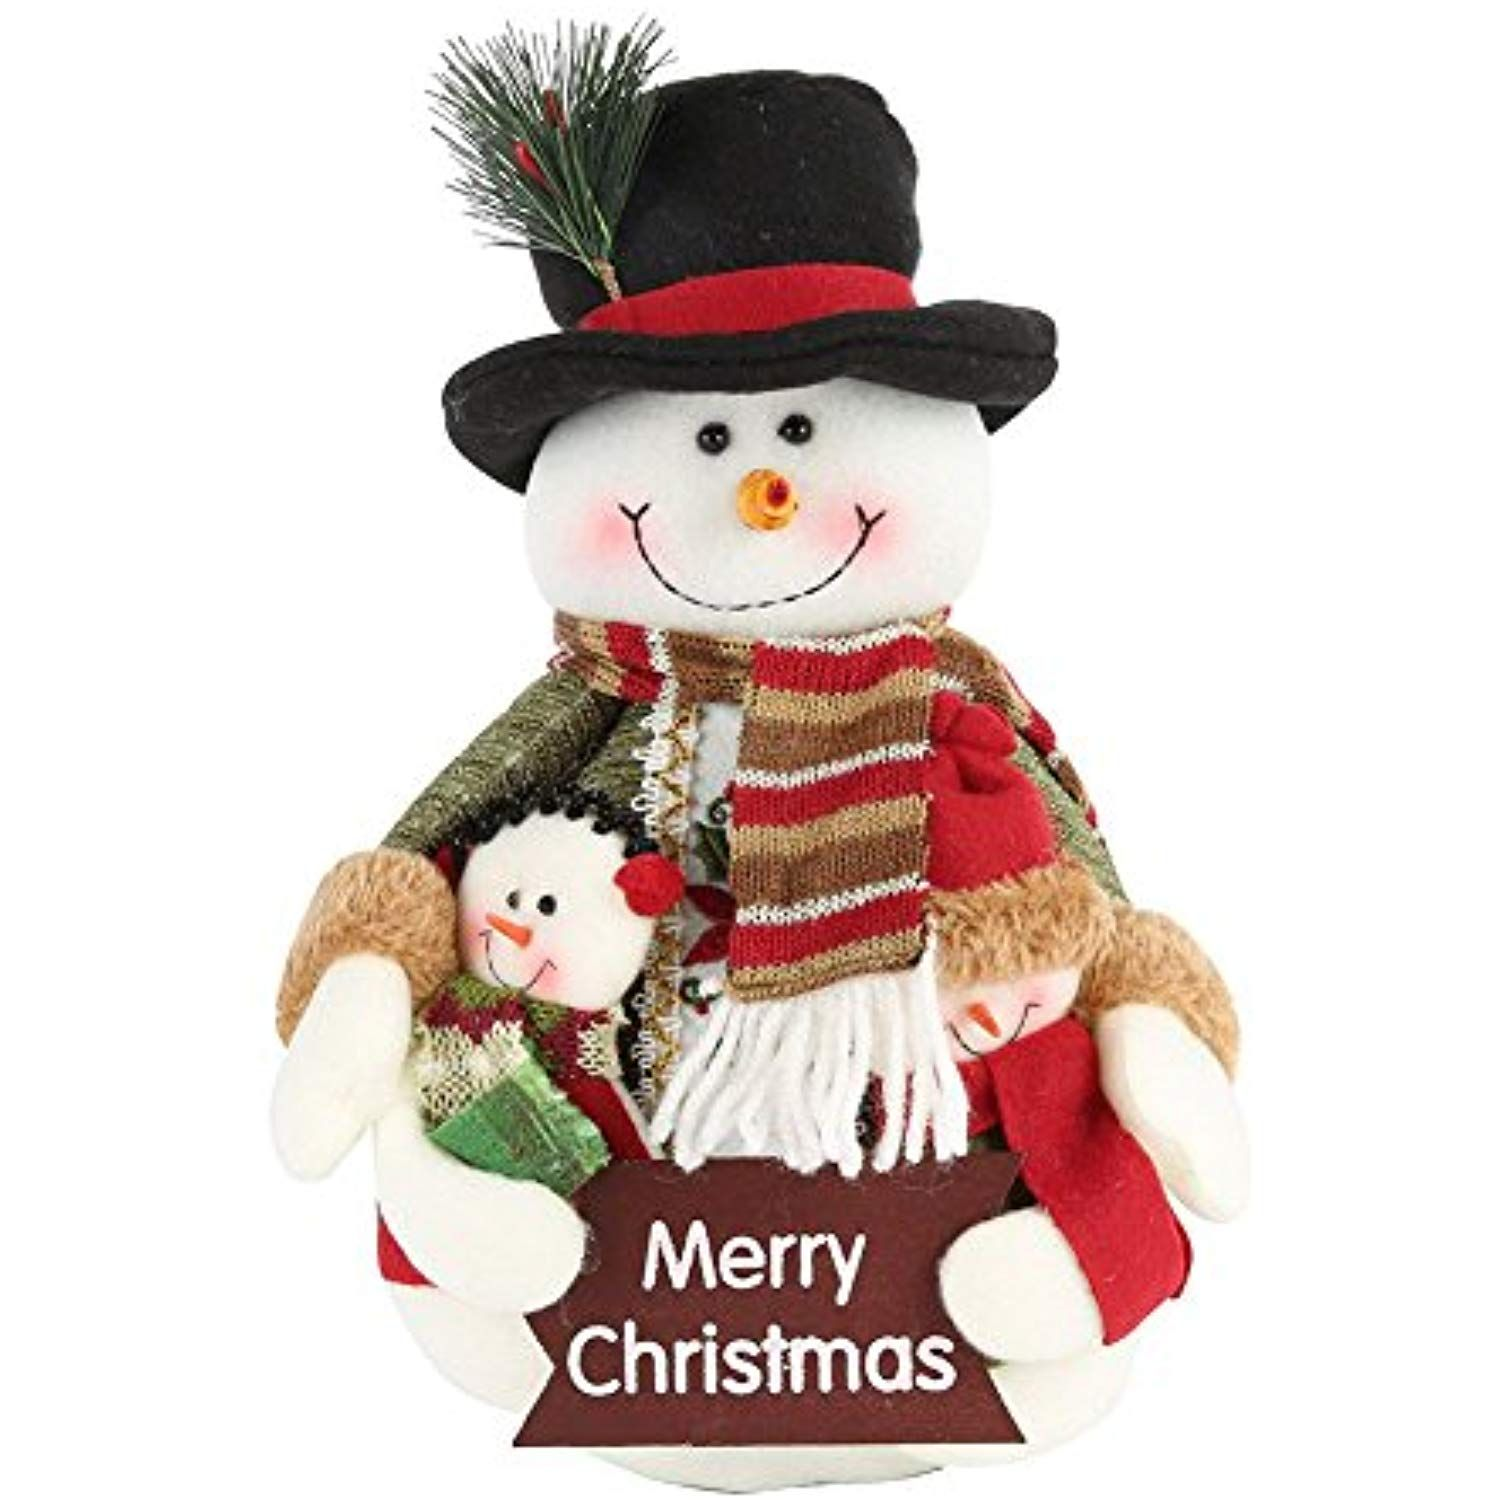 Christmas Dolls Decor Green Snowman Claus Xmas Hanging Table Standing Ornament